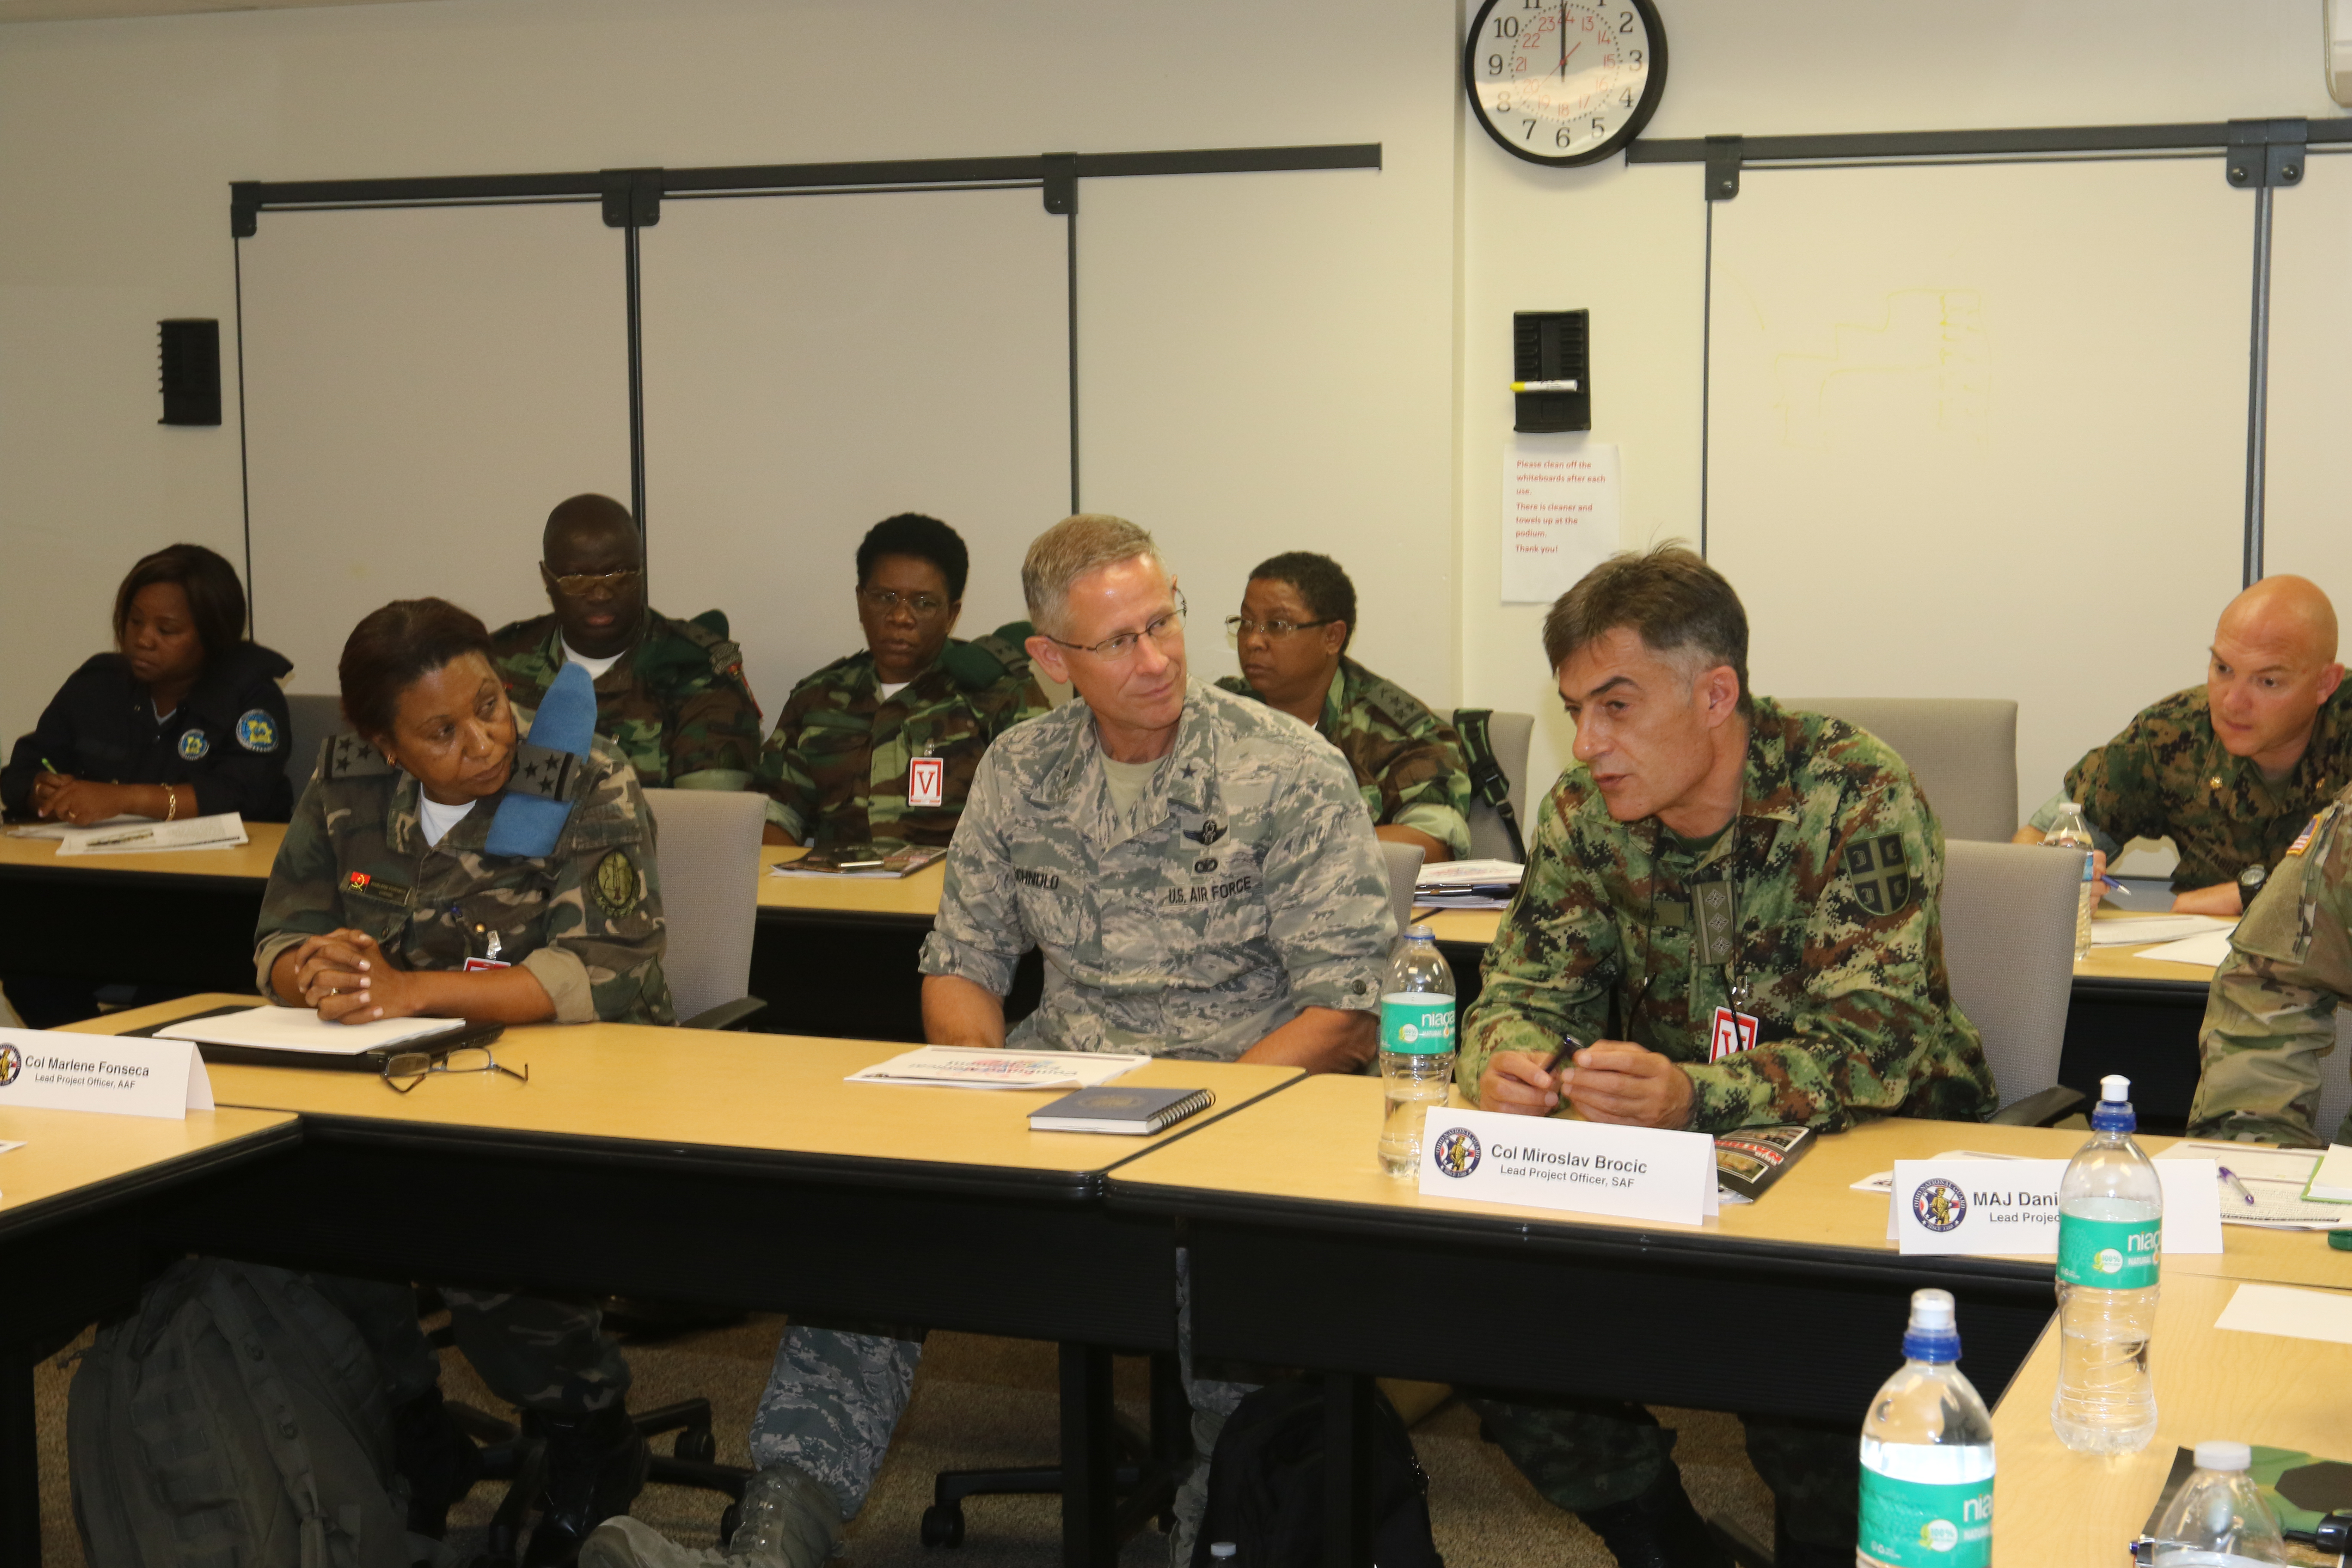 Representatives from the Serbian and Angolan Armed Forces meet with members of the Ohio National Guard to plan a Combined Medical Engagement June 29, 2017, at Joint Force Headquarters-Ohio, located at the Maj. Gen. Robert S. Beightler Armory in Columbus, Ohio. In this photo, Col. Miroslav Brocic (right), lead project officer for the Serbian Armed Forces, discusses a point while Col. Marlene Fonseca (left), lead project officer for the Angolan Armed Forces, and Brig. Gen. Gregory N. Schnulo, Ohio assistant adjutant general for Air, listen. (Ohio National Guard photo by Staff Sgt. Michael Carden)